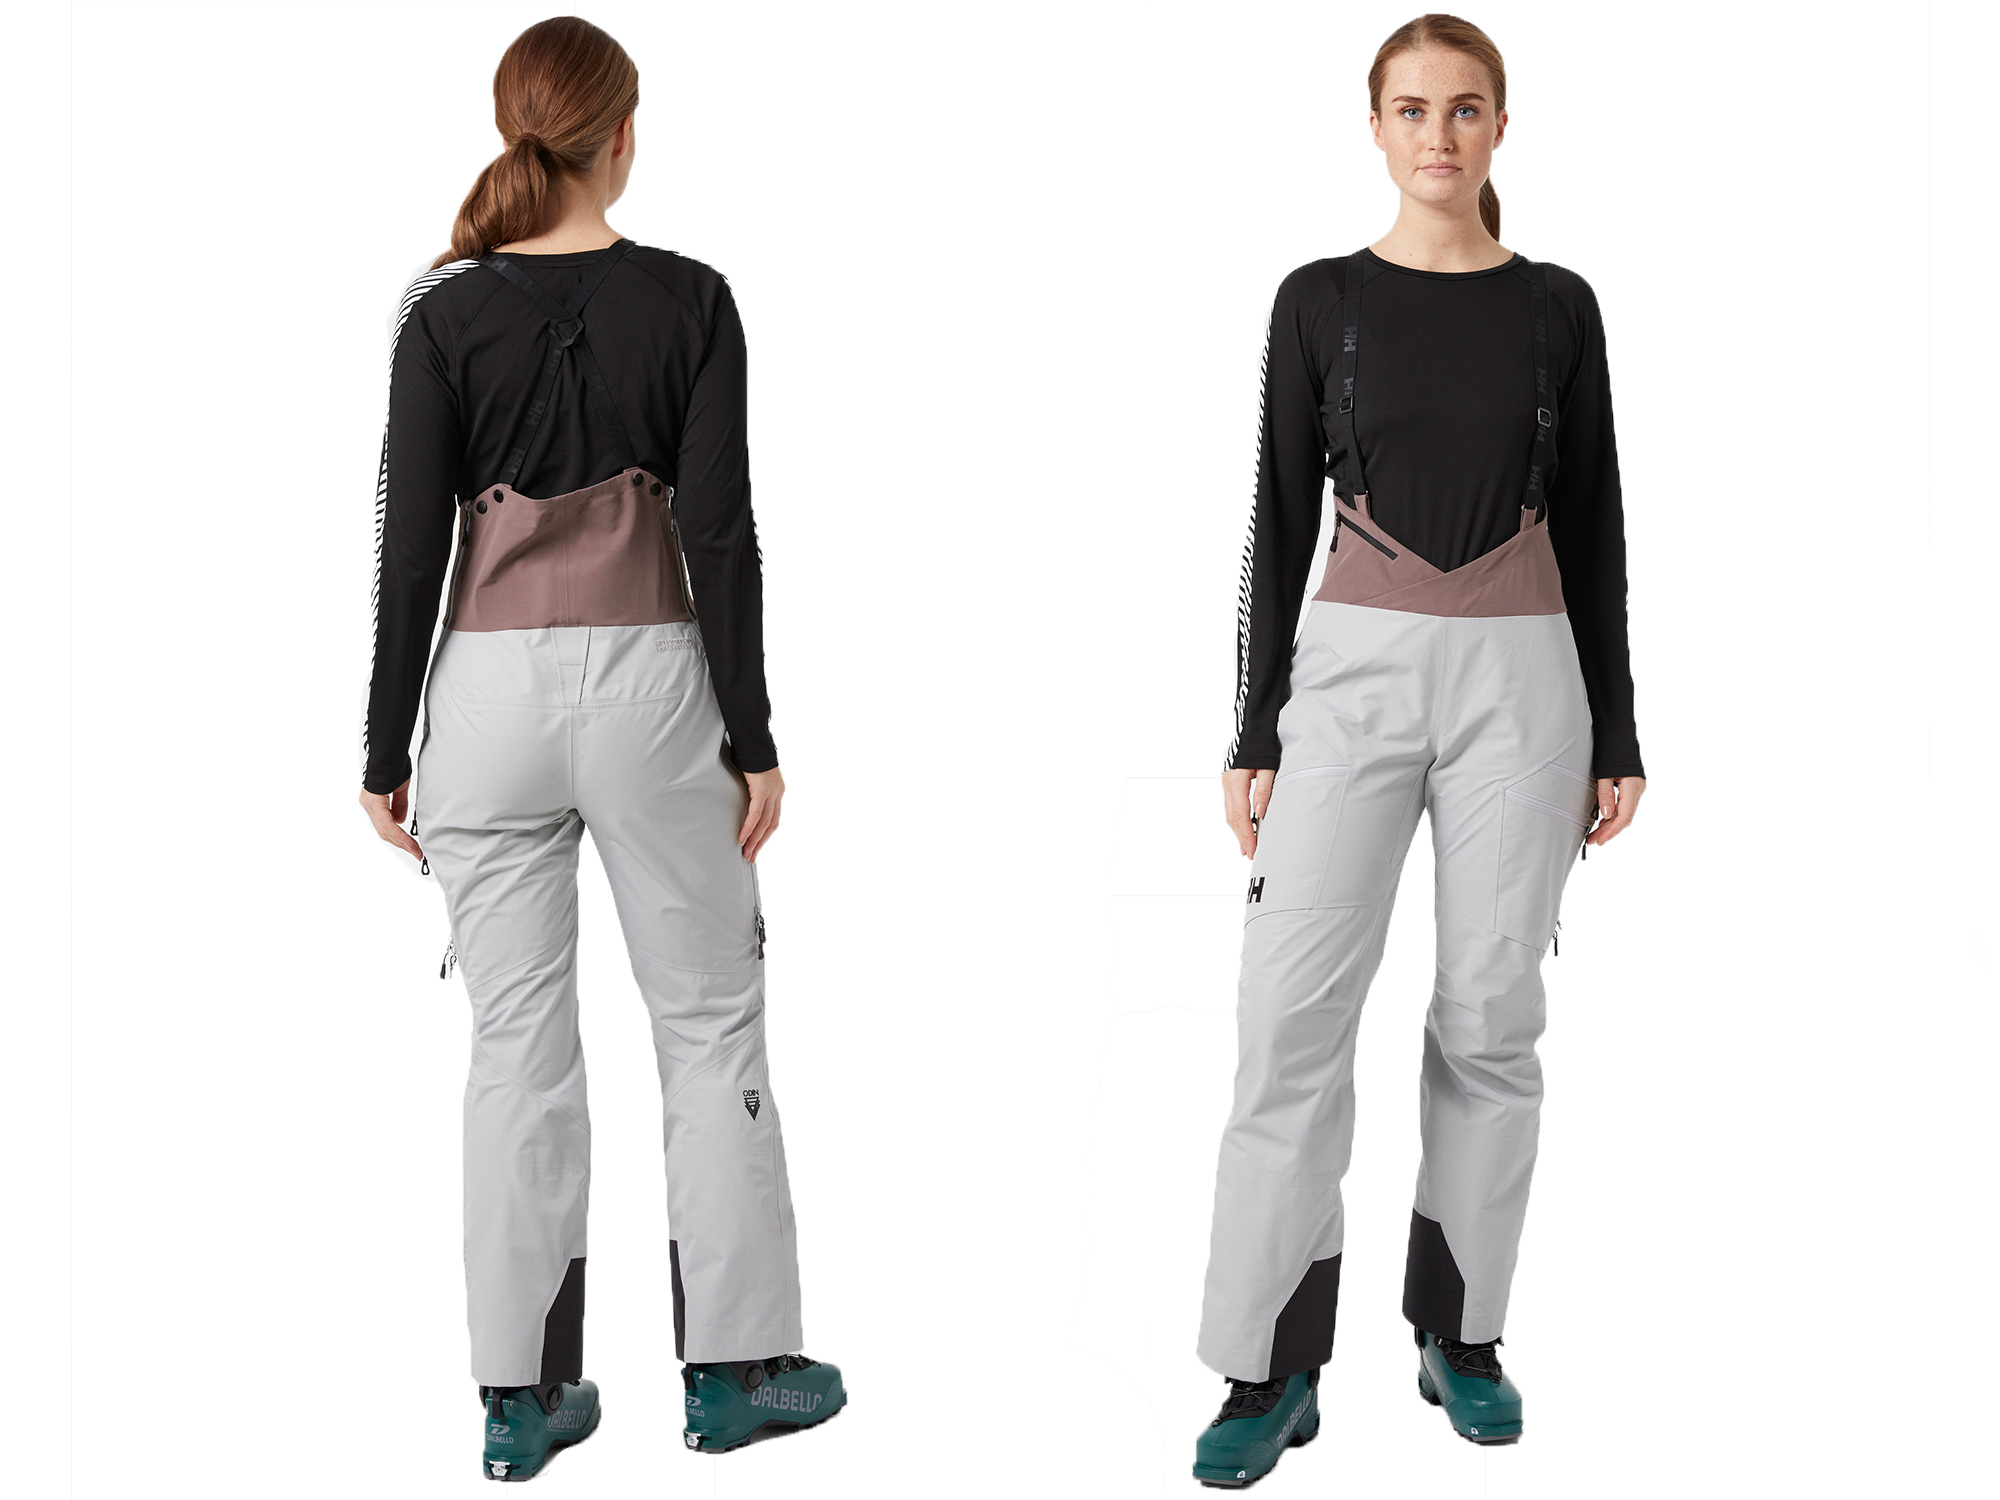 front and back view of female model in ponytail wearing Helly Hansen pant bib